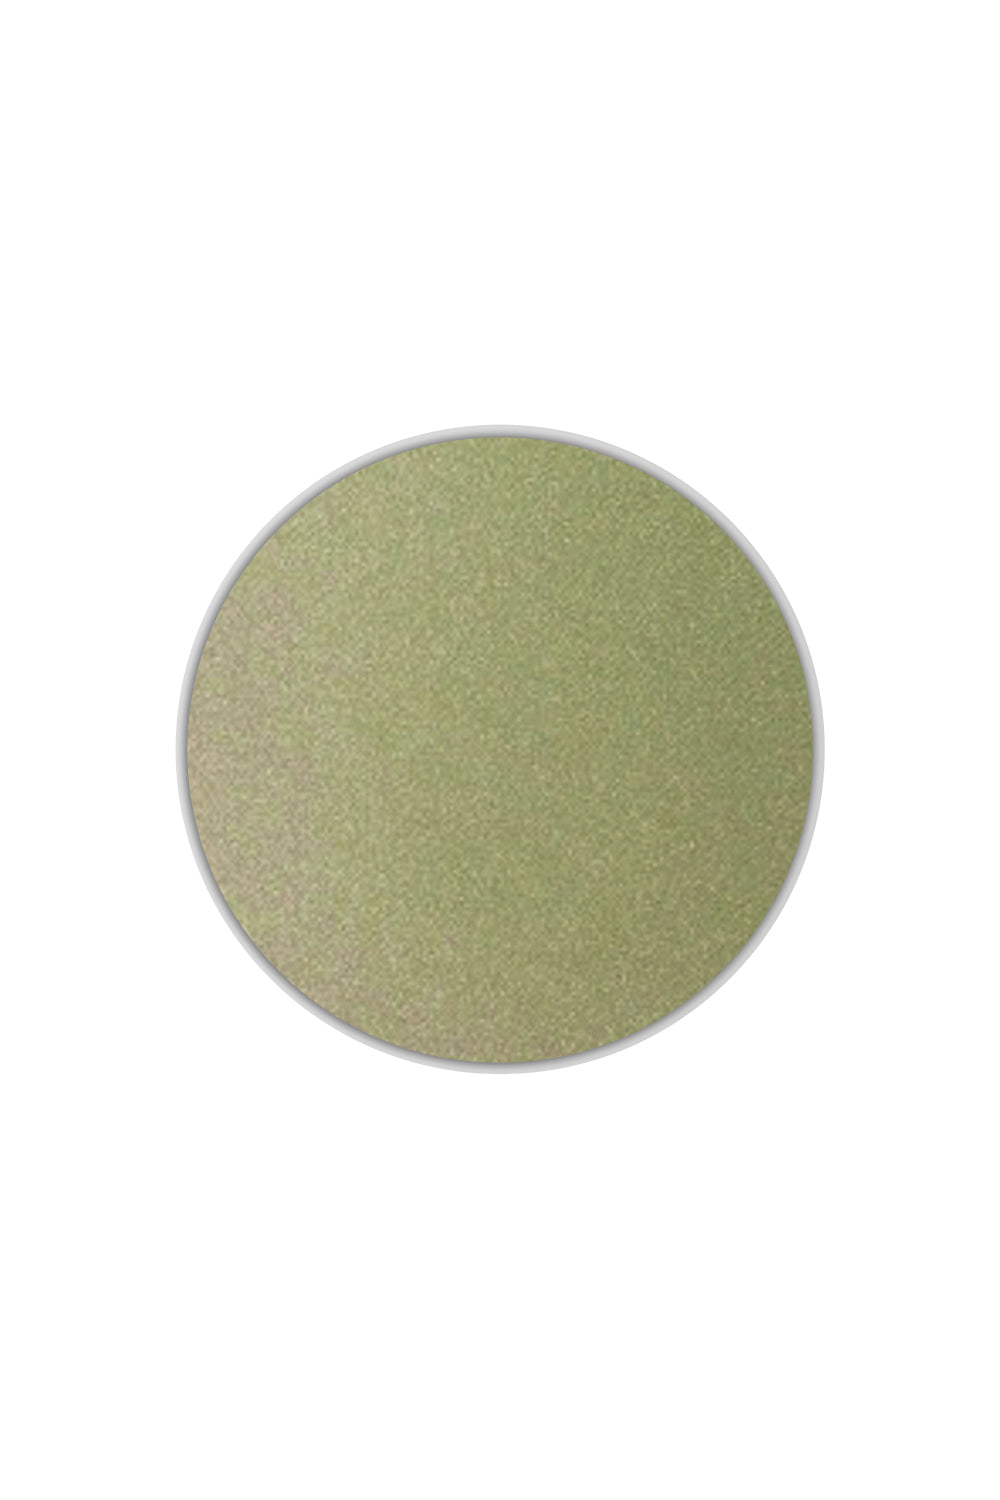 Type 3 Eyeshadow Pan - Jade